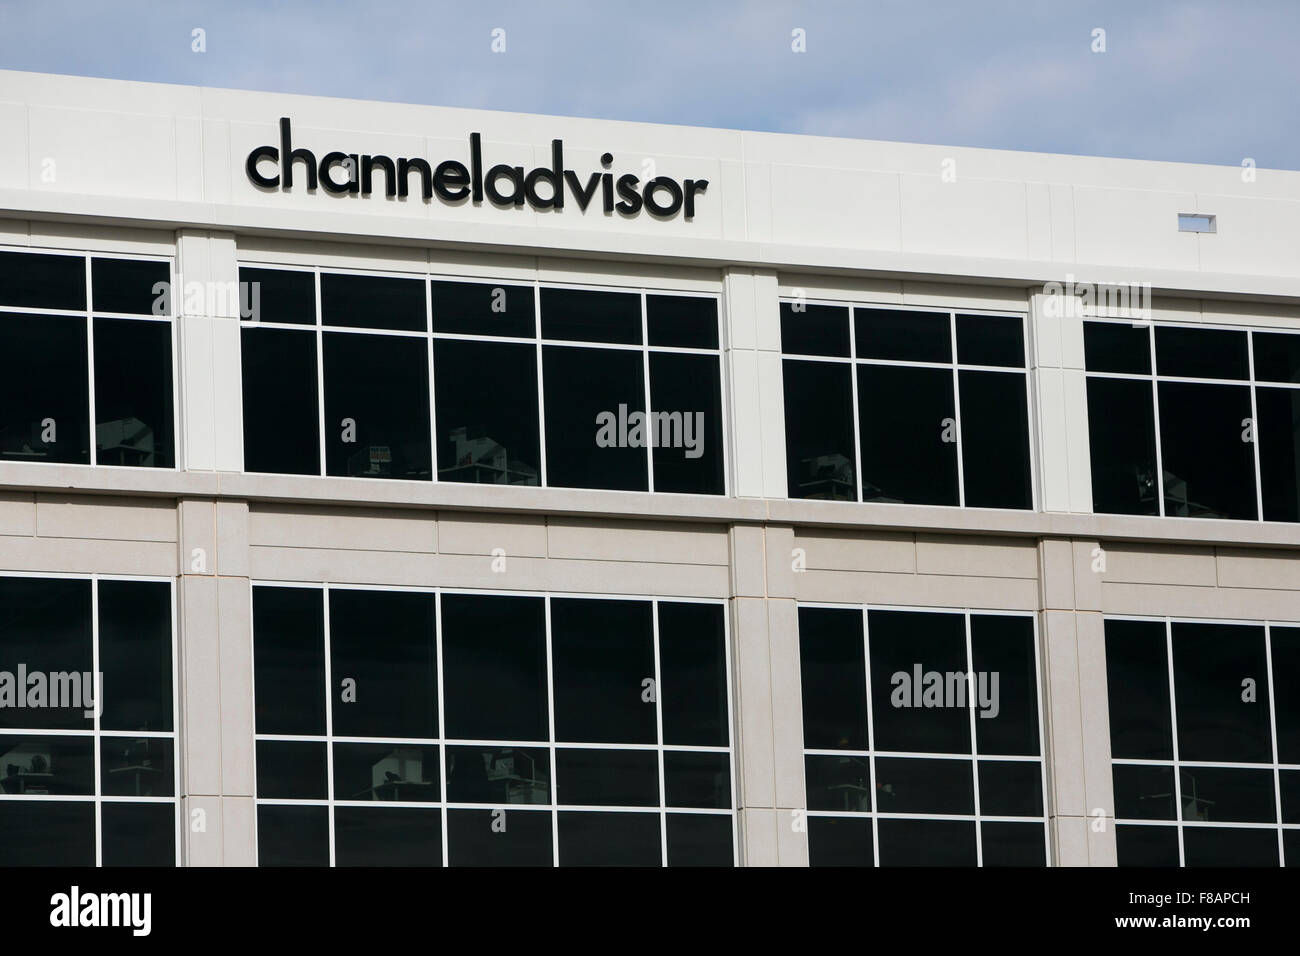 A logo sign outside of the headquarters of ChannelAdvisor in Morrisville, North Carolina on November 29, 2015. - Stock Image